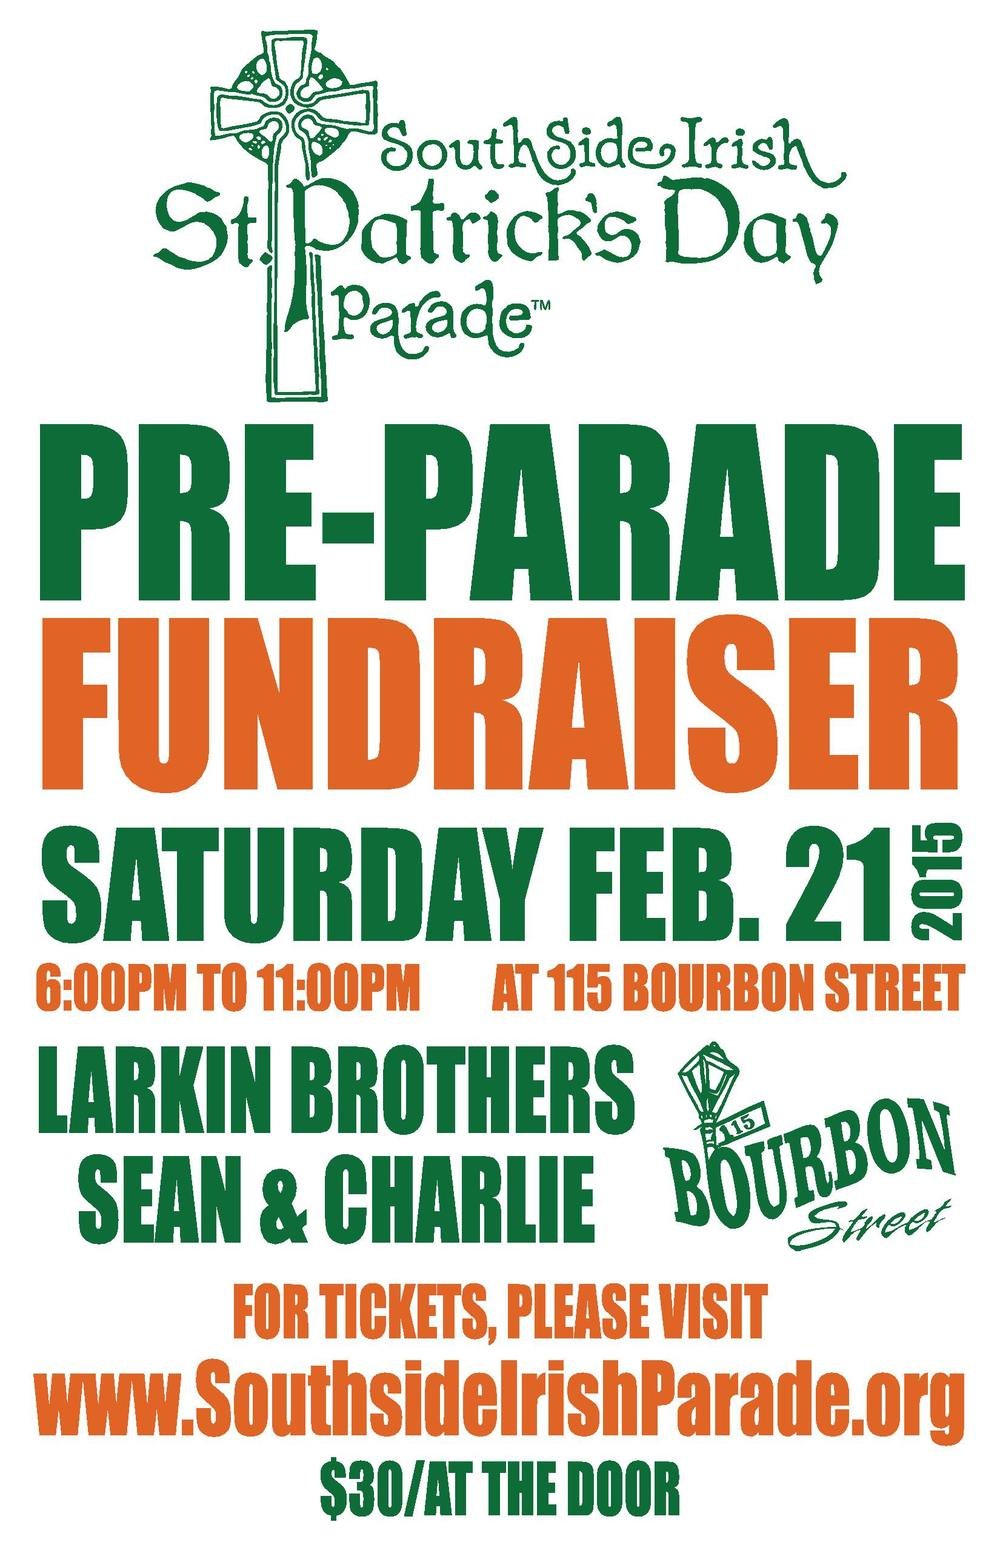 2015_south_side_irish_parade_fundraiser